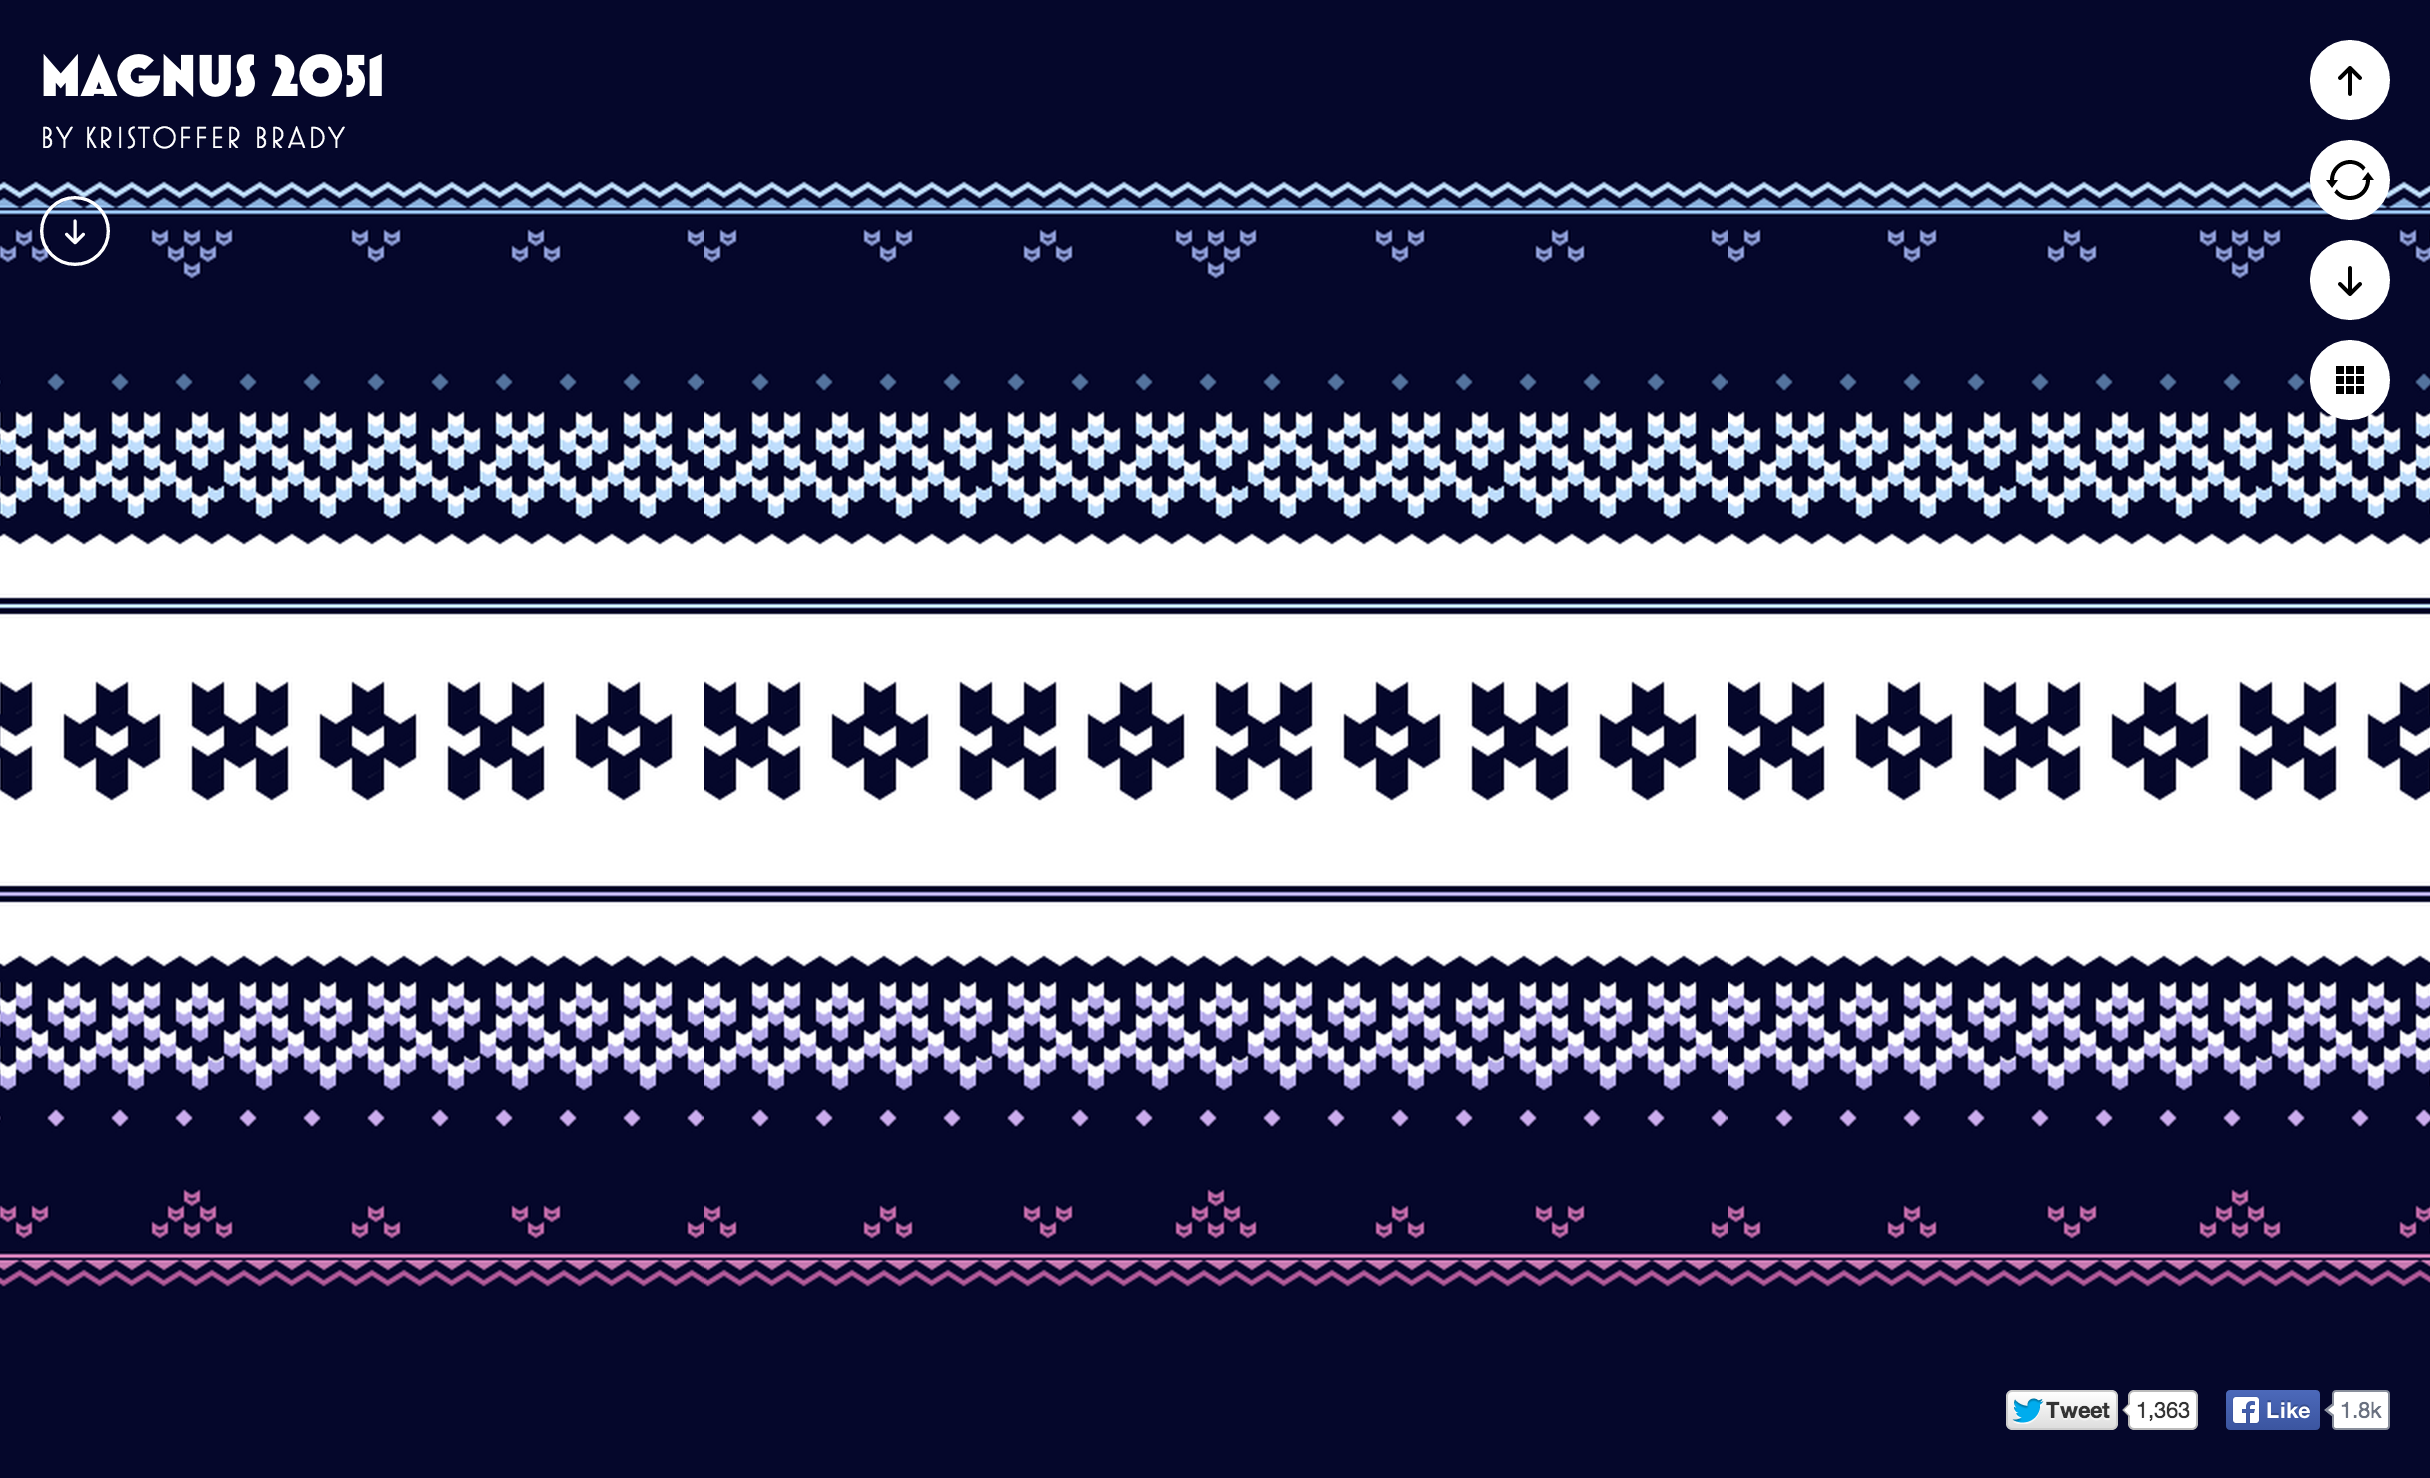 The Amazing Pattern Library - Fonts In Use